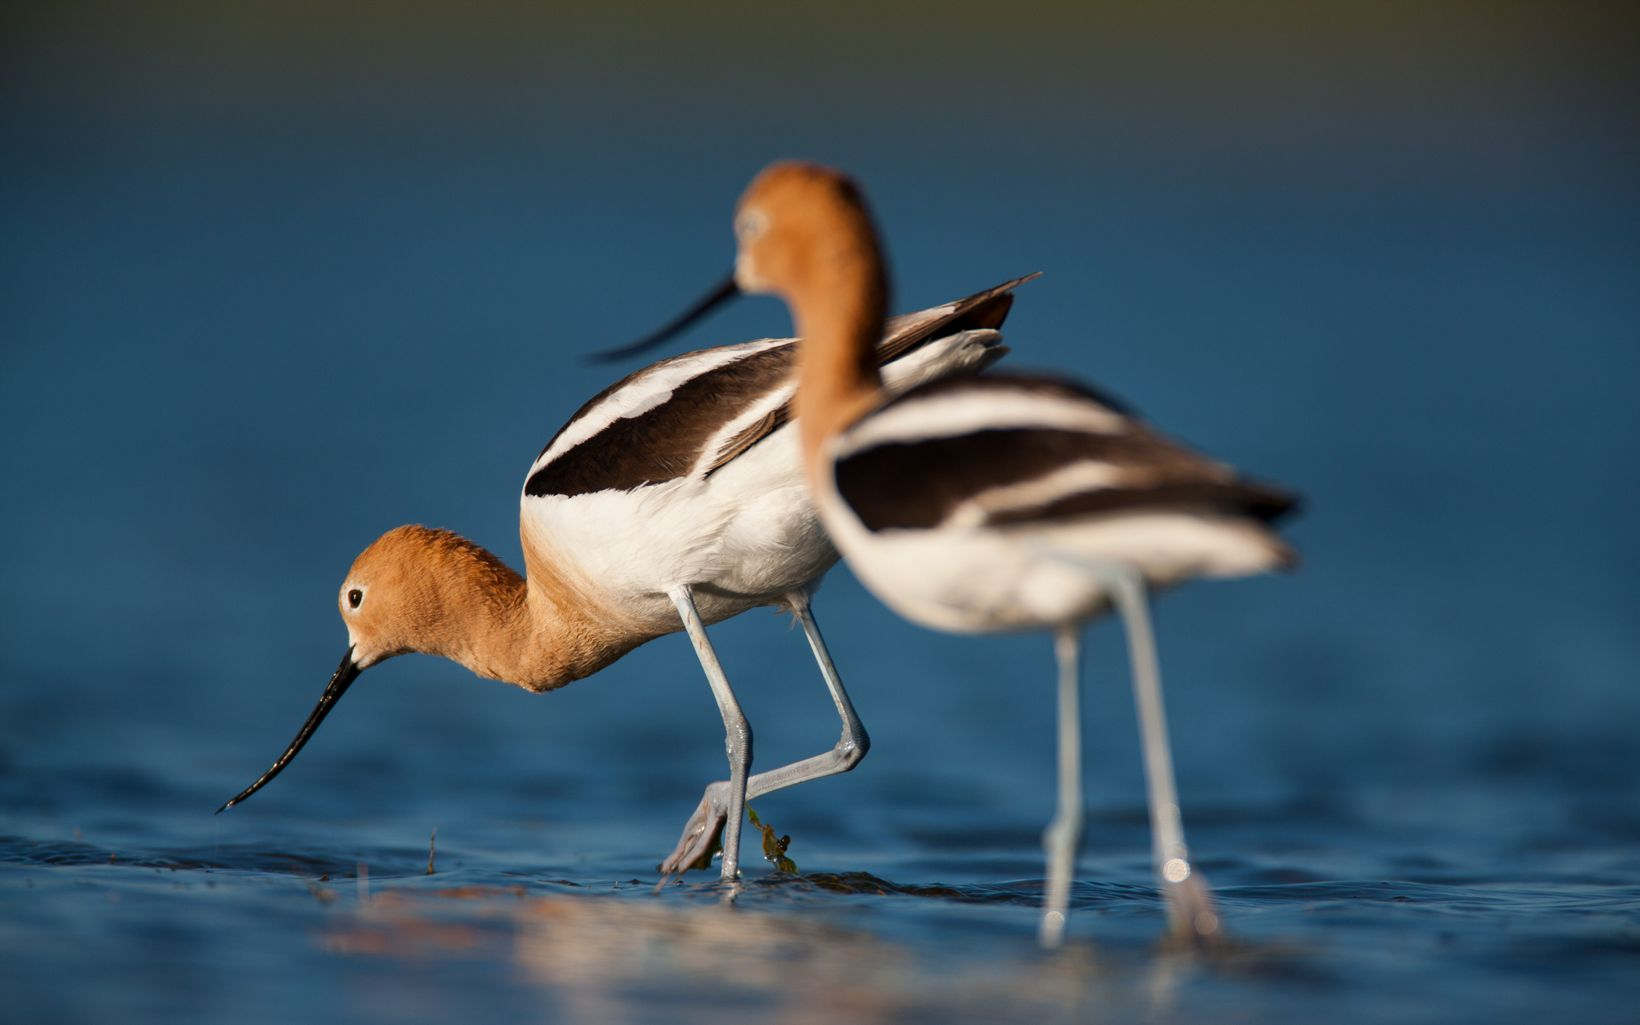 Two long-leg birds with long beaks, brown faces, white bodies and dark wings.